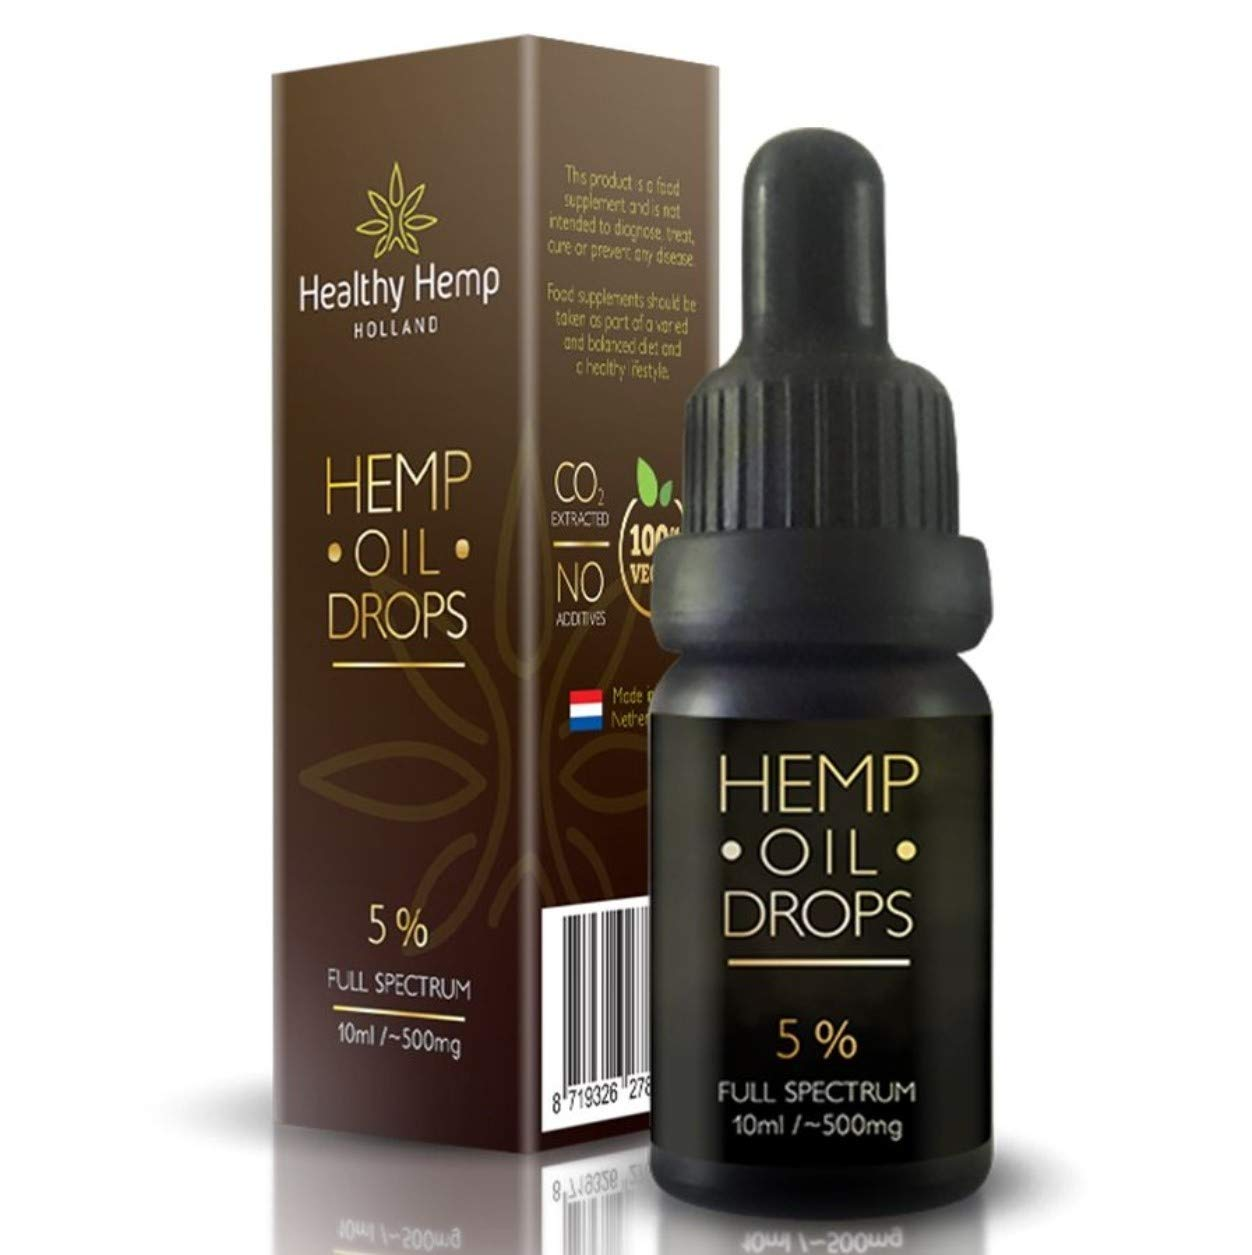 Hemp Oil Drops 5%, Organic Full Spectrum Co2 Extract, Great for Pain,  Anxiety & Stress Relief [ 10ml ] Best from The Netherlands (5% (500mg))